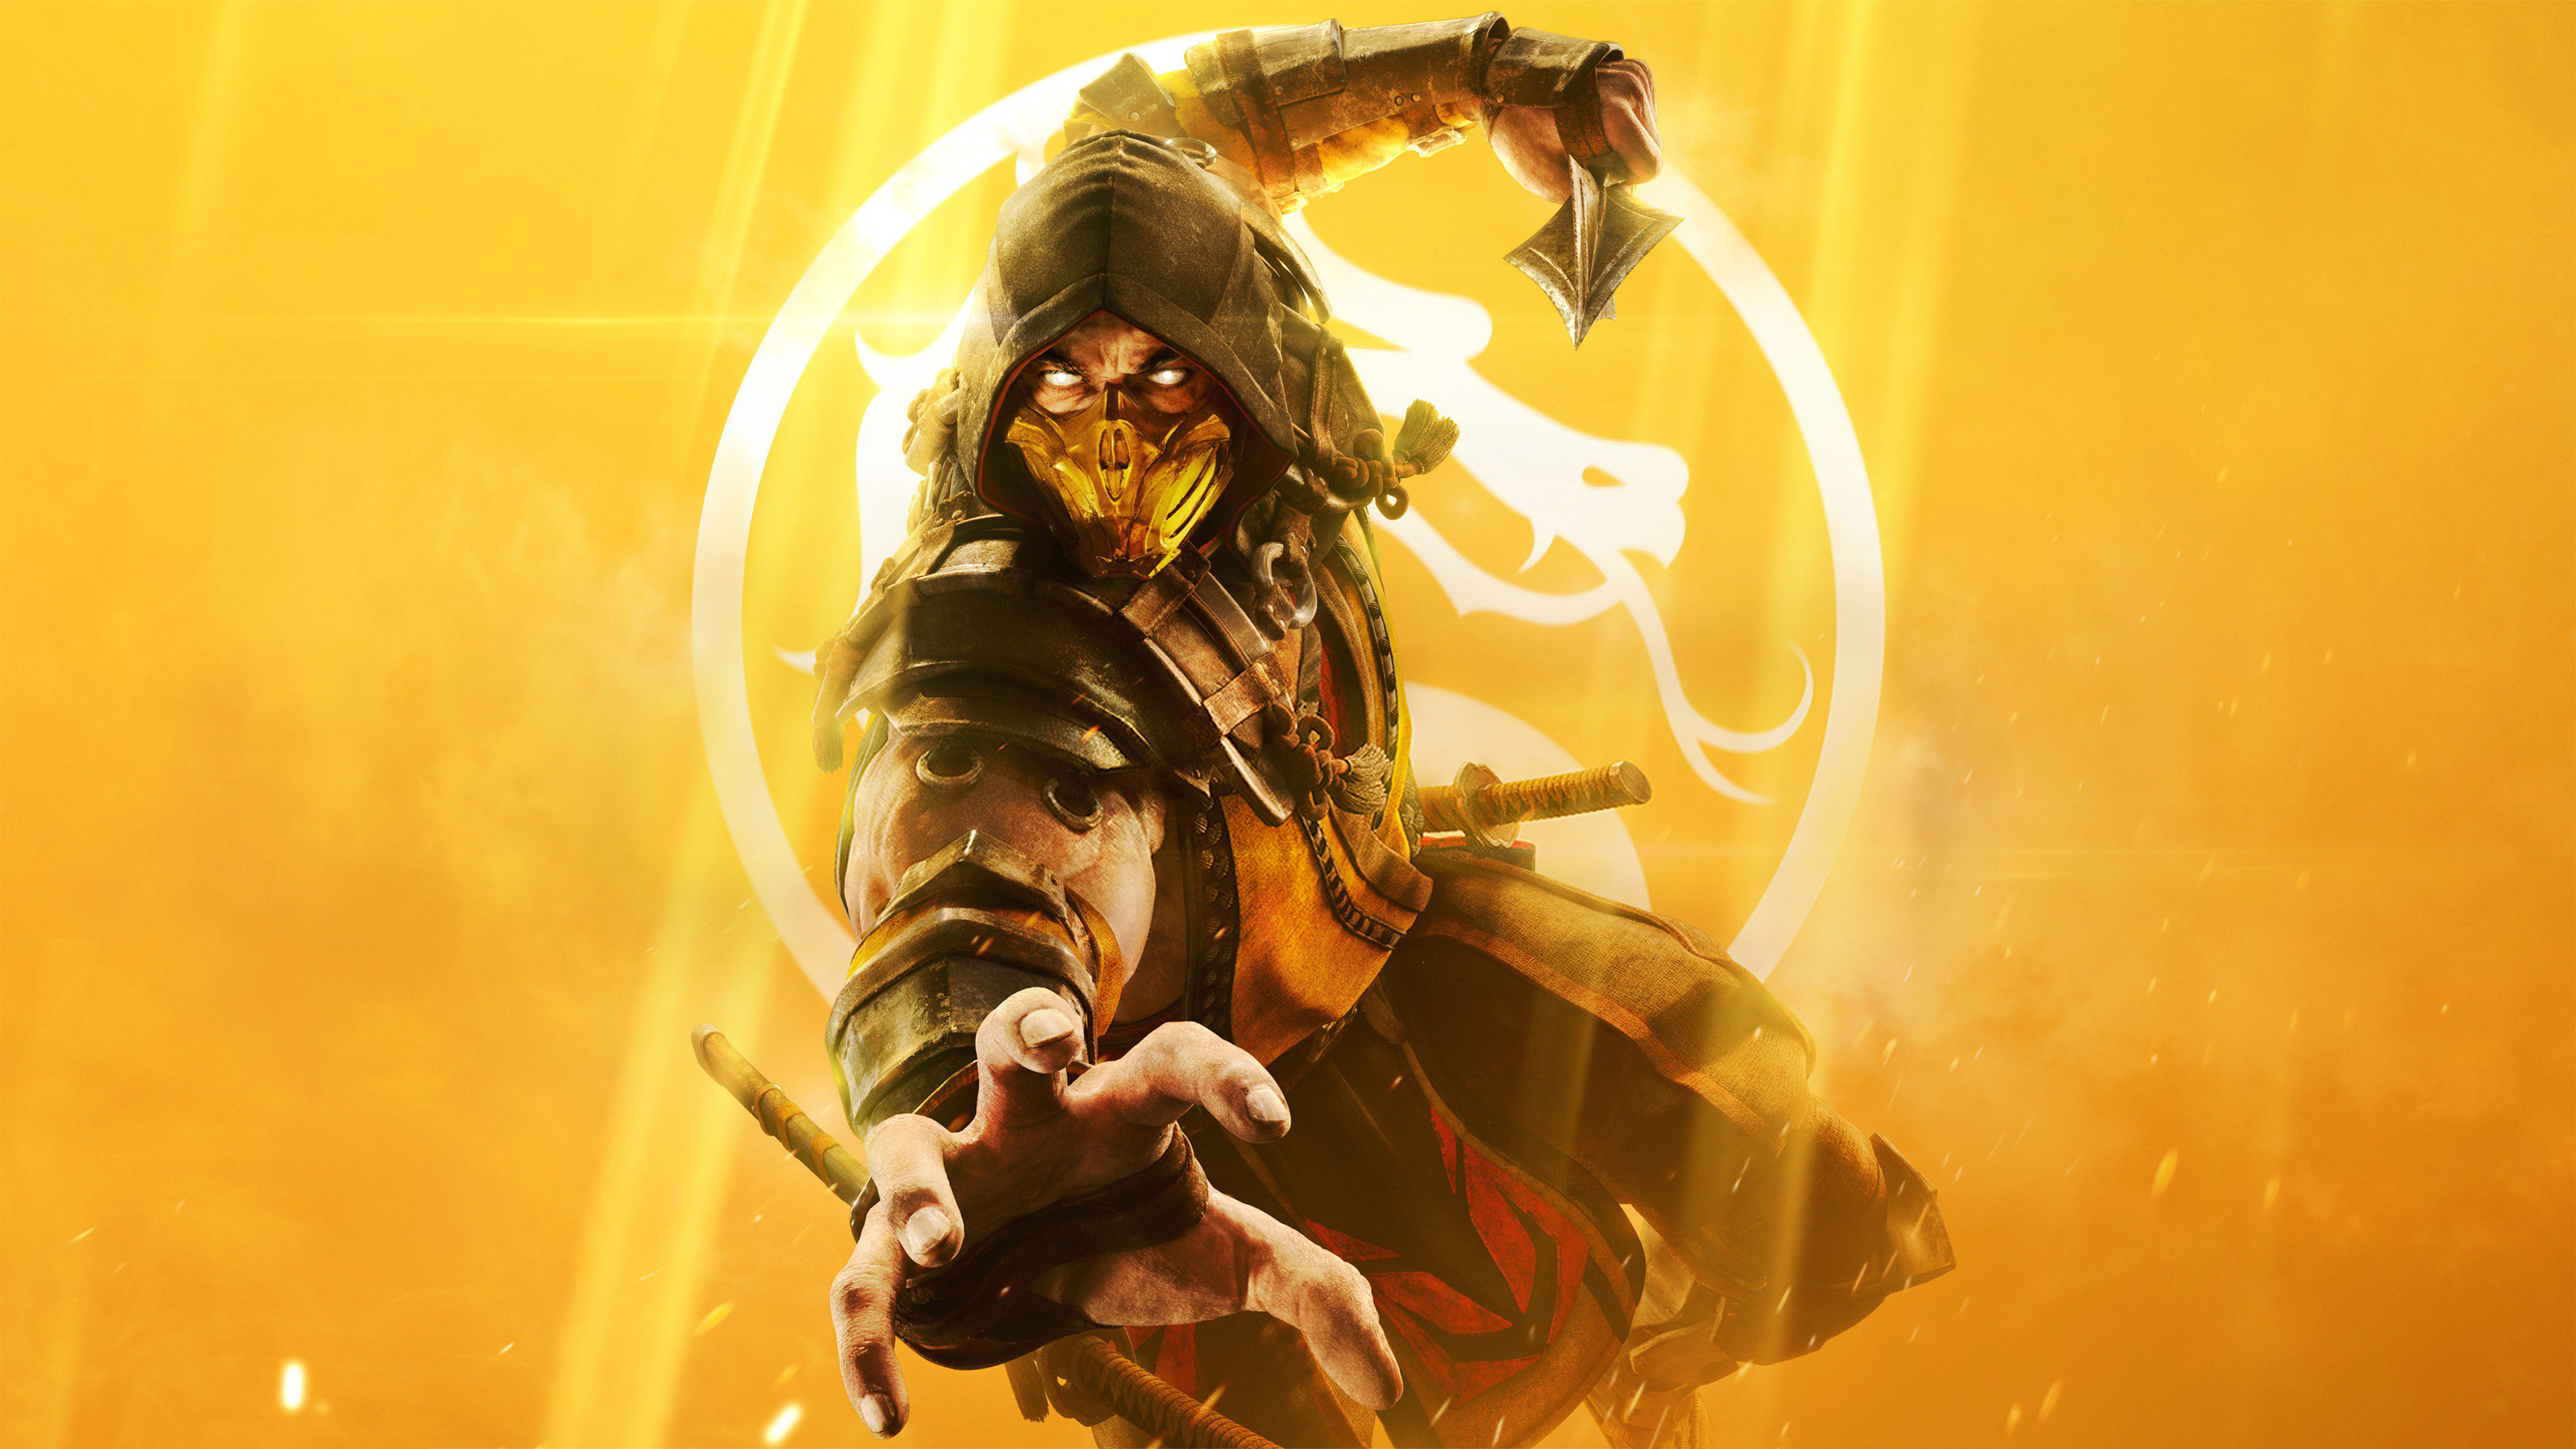 Mortal Kombat 11 4k, HD Games, 4k Wallpapers, Images